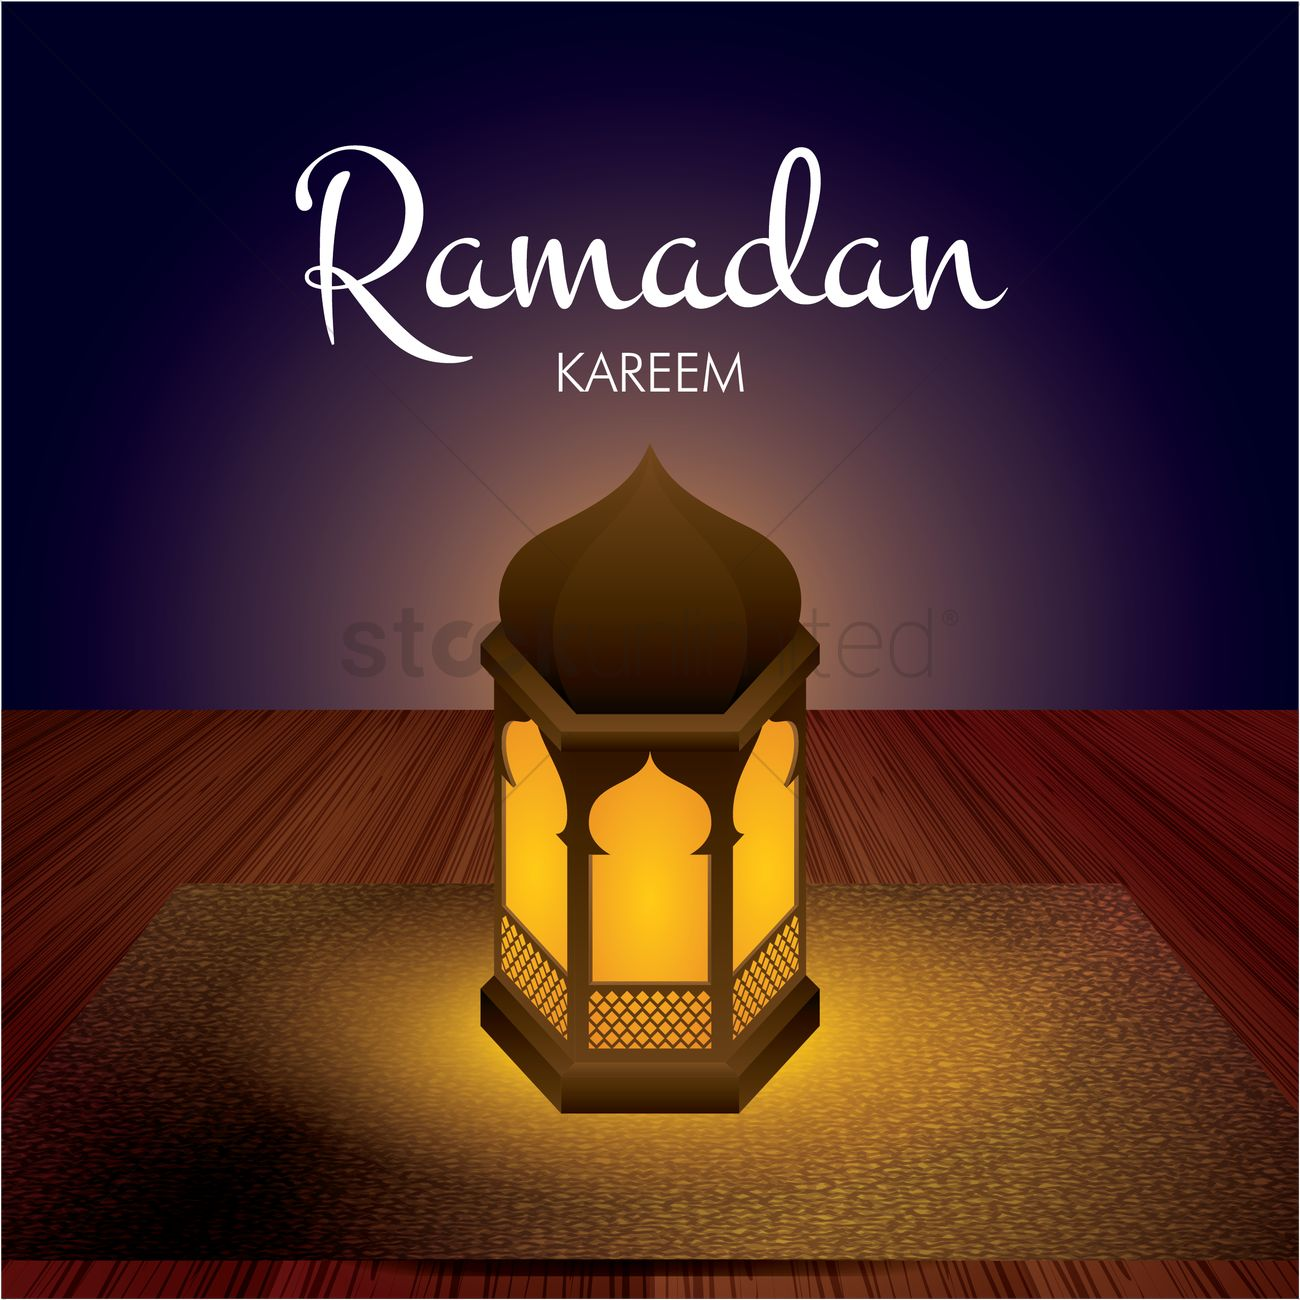 Ramadan Kareem Greeting Vector Image 1826944 Stockunlimited